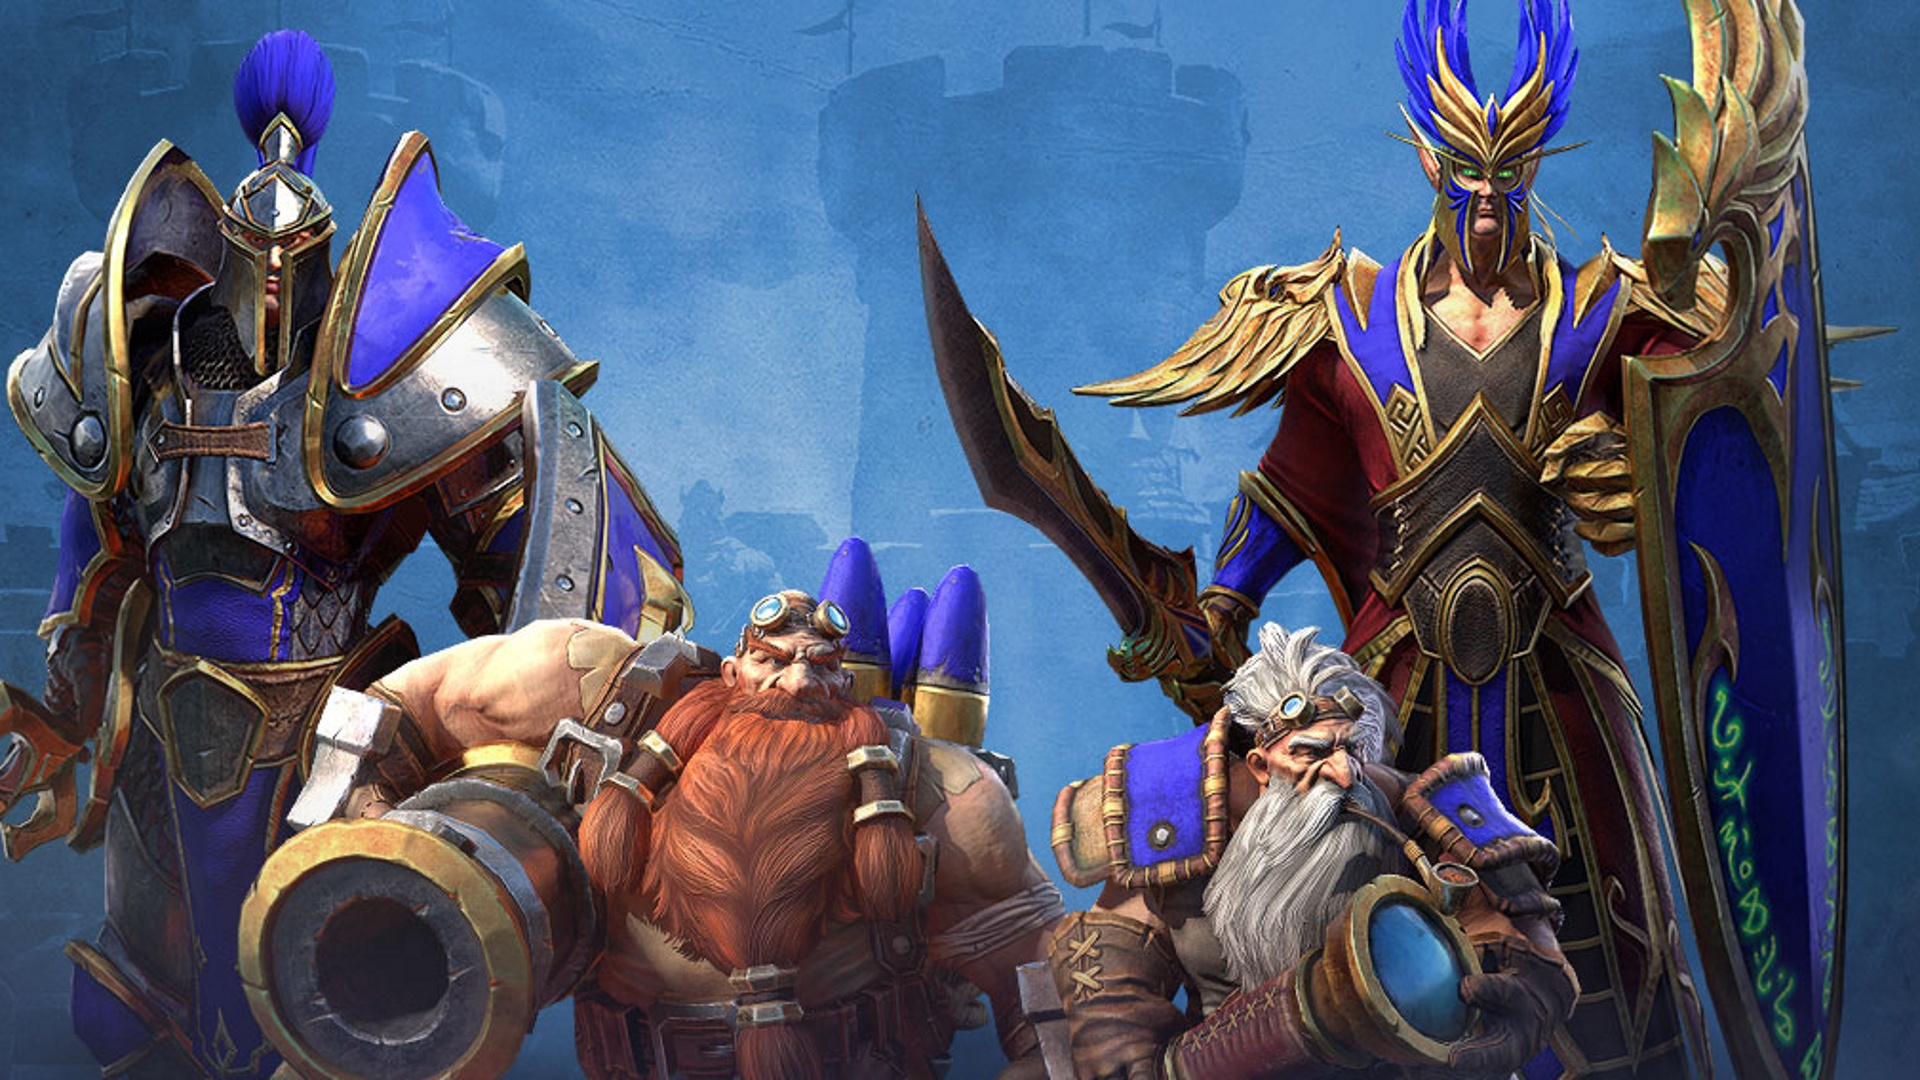 Warcraft 3 Reforged' Gameplay and New Features